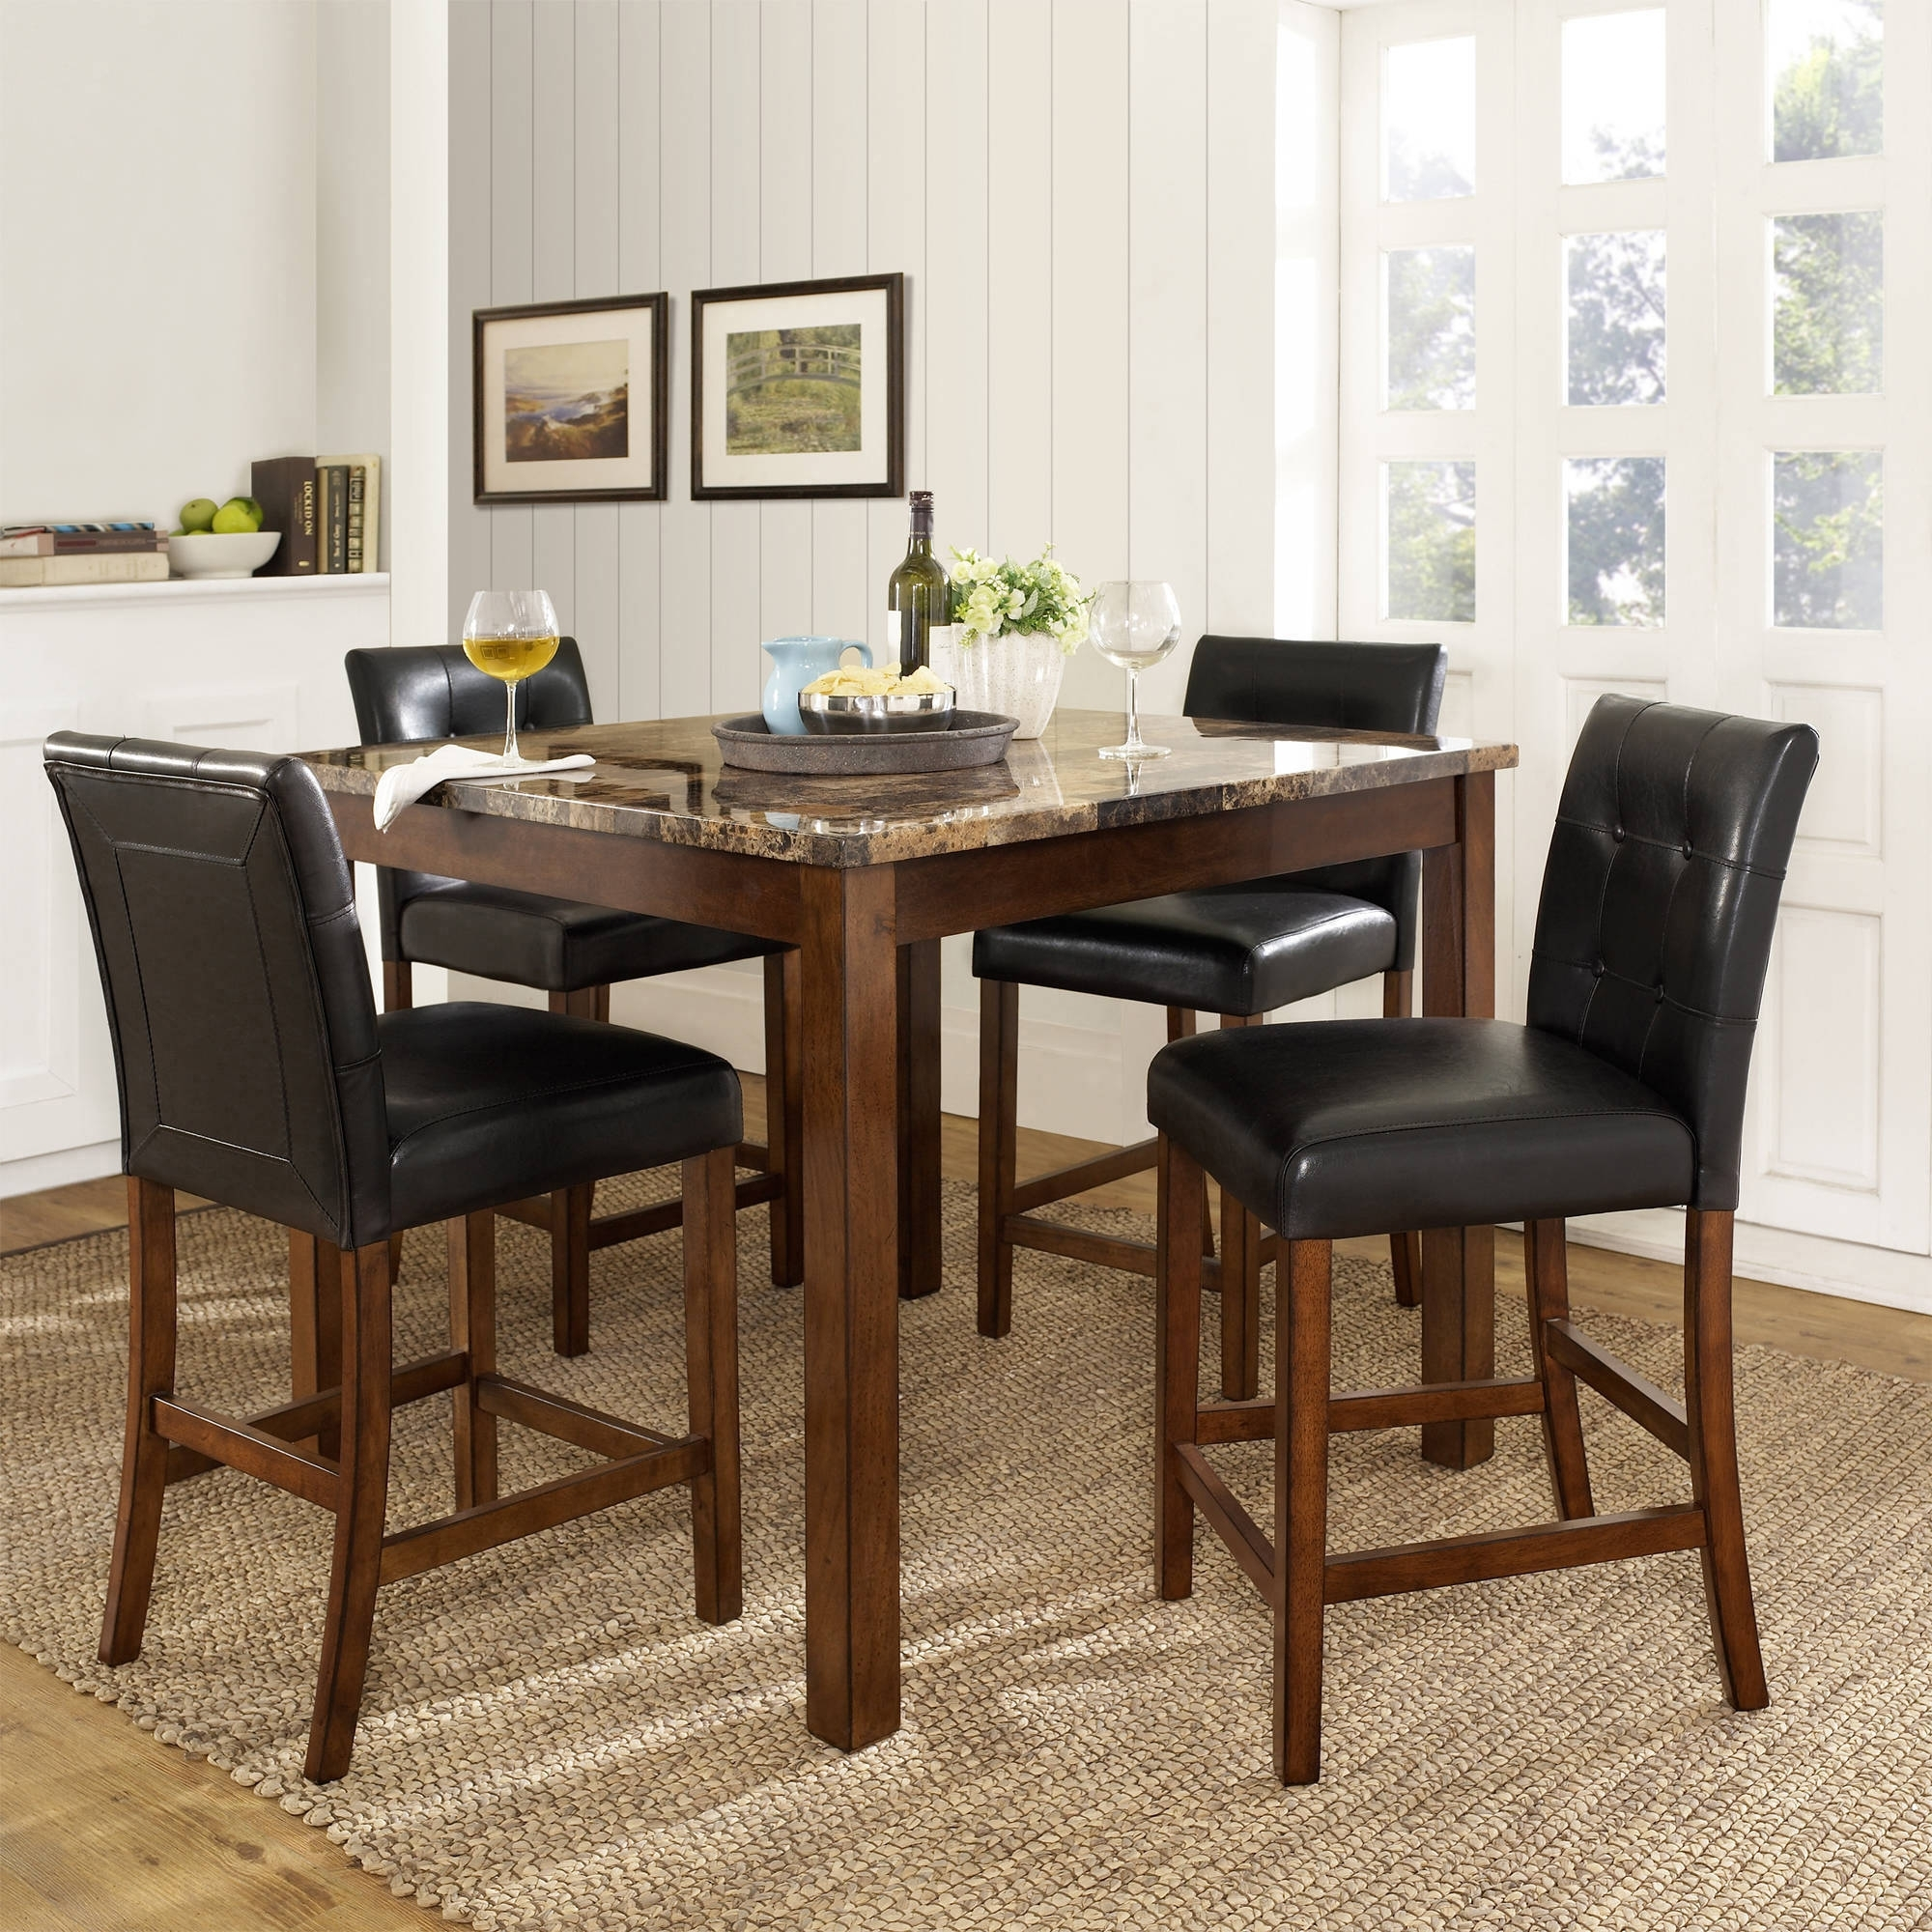 Dorel Living Andover 5 Piece Faux Marble Counter Height Dining Set For Recent Jaxon 5 Piece Round Dining Sets With Upholstered Chairs (View 16 of 20)